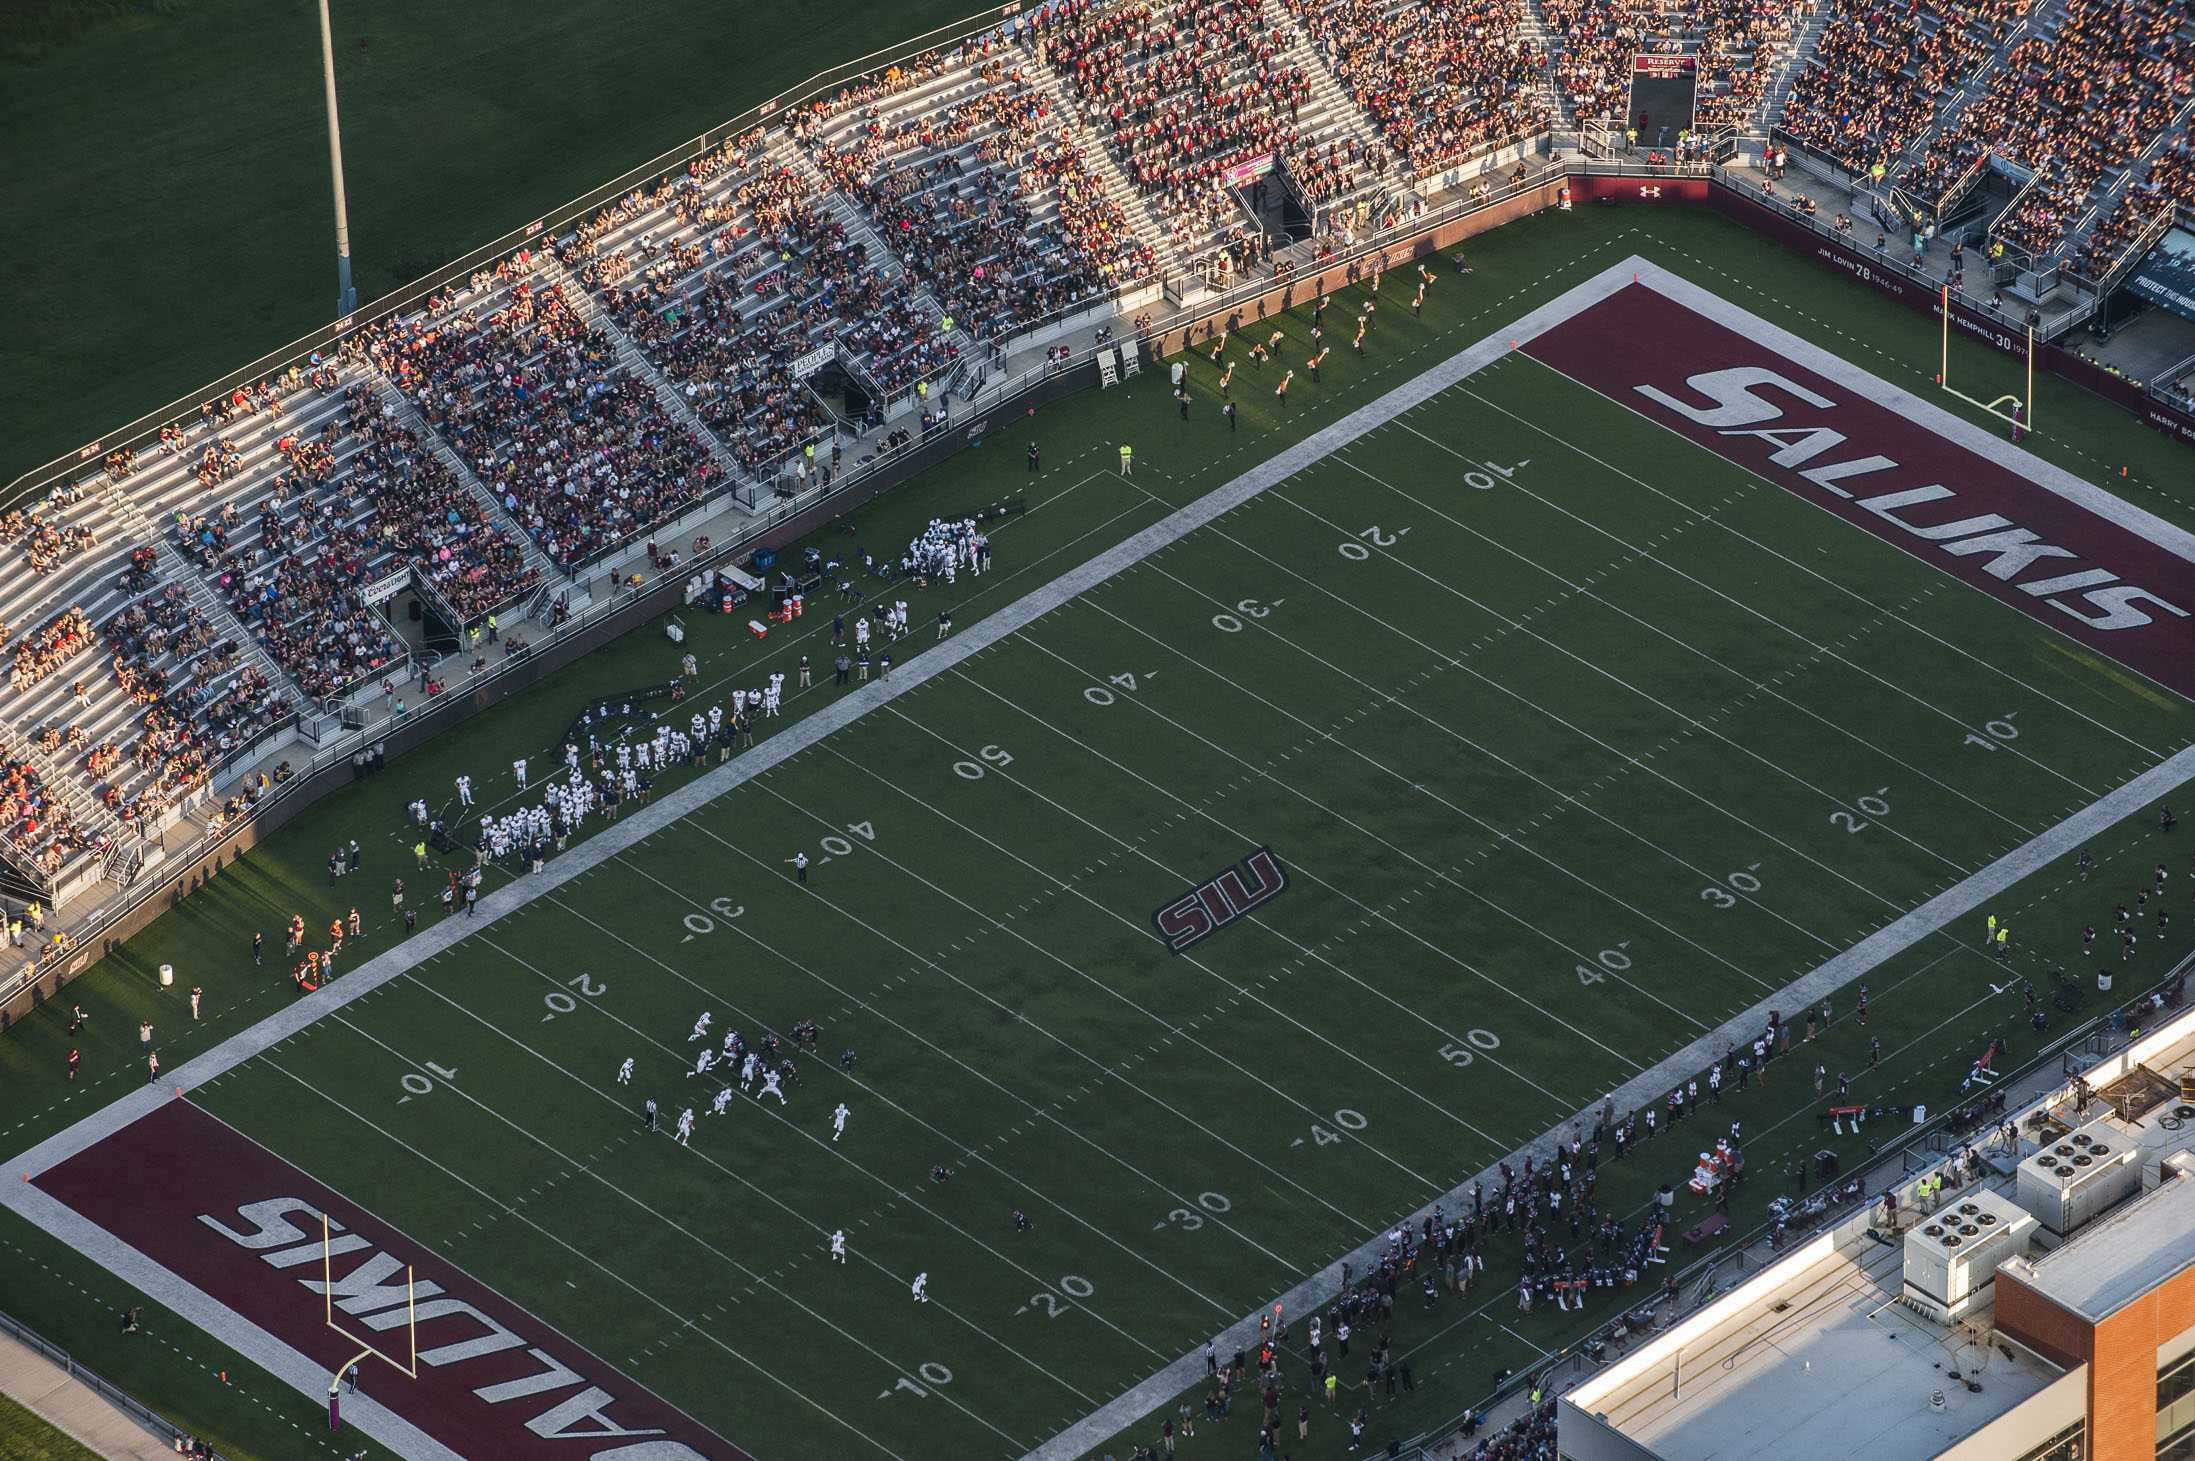 Football fans fill the stands during the Salukis' 50-17 win over the Murray State Racers on Saturday, Sept. 17, 2016, at Saluki Stadium. (Ryan Michalesko | @photosbylesko)